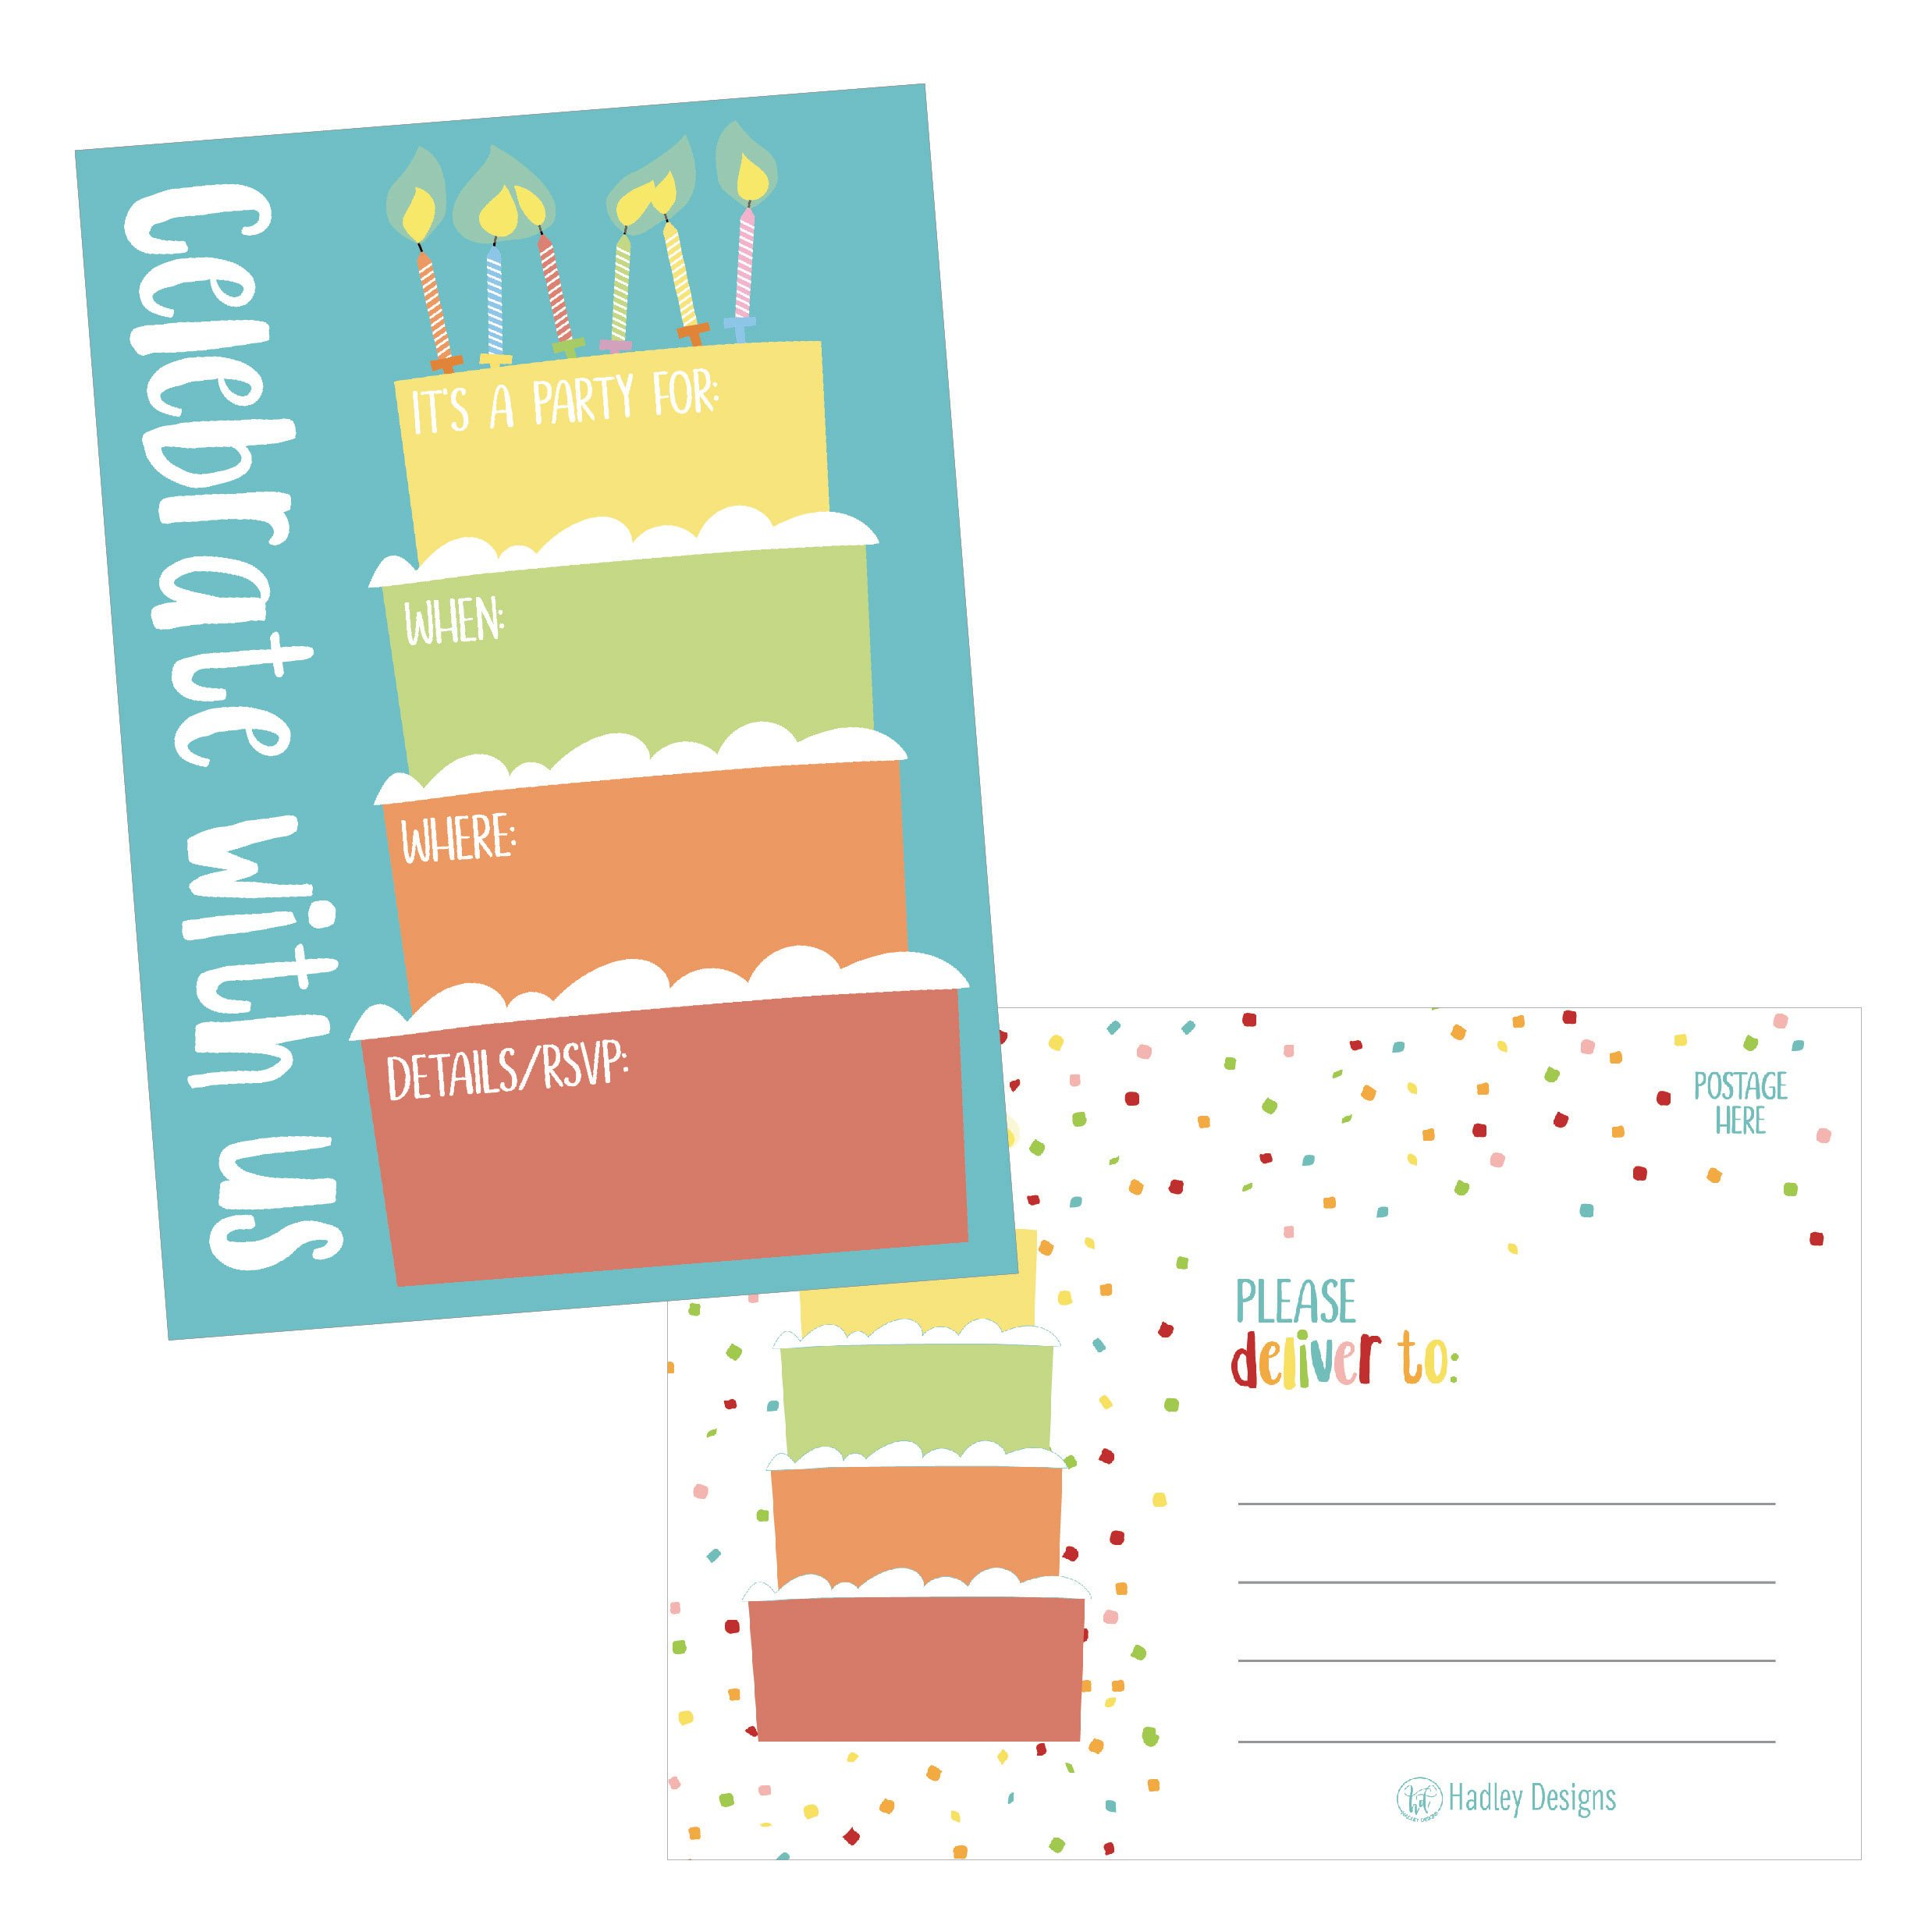 25 Cake Rainbow Party Invitations for Kids, Teens, Adults, Boys & Girls, Blank Children Happy 1st Birthday Invitation Cards, Unique Baby First Bday Invites, Toddler 1 2 3 Year Old rsvp Invites Fill In